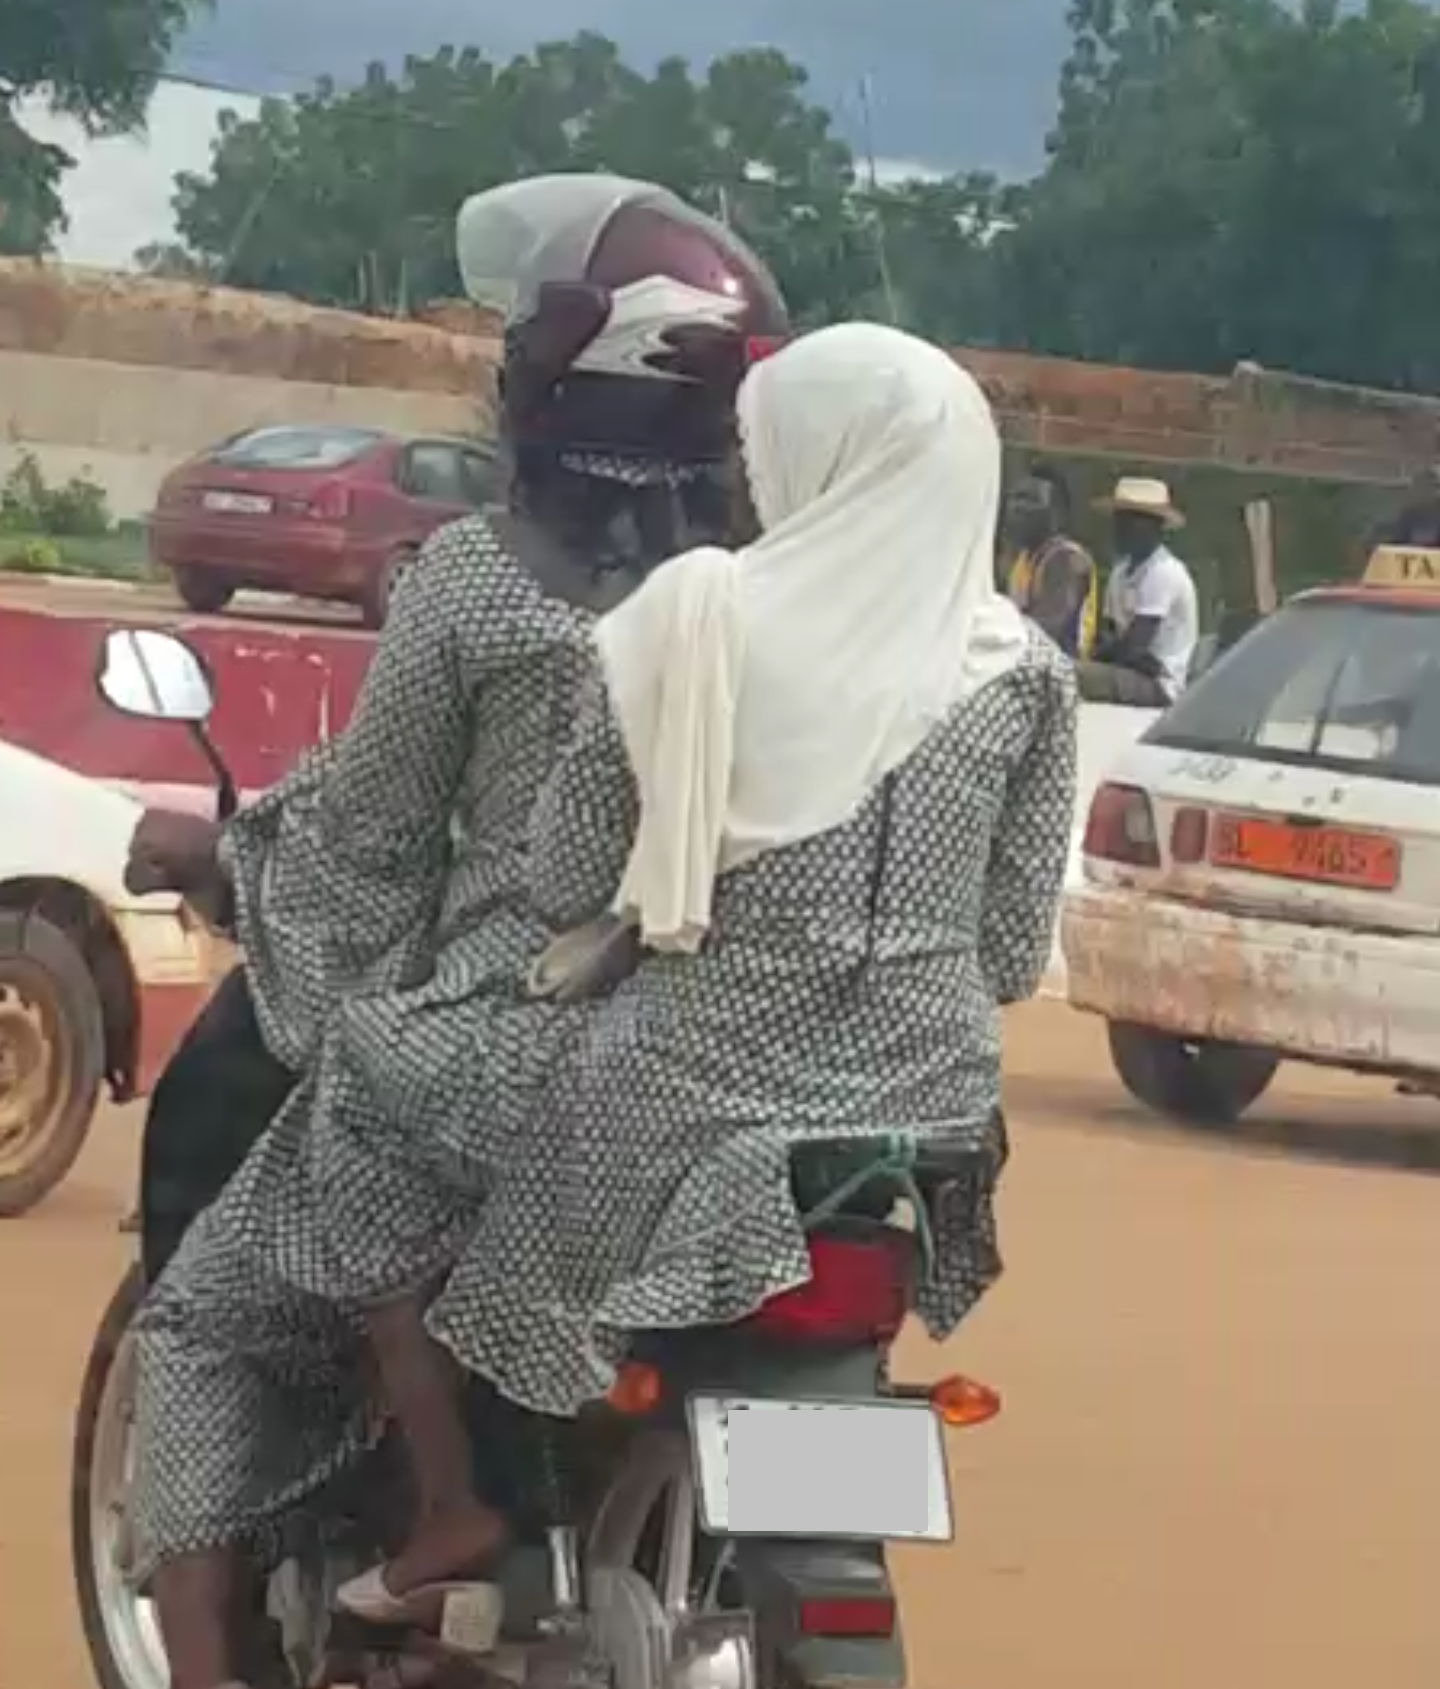 Mother and Daughter (I guess) on a Motorcycle